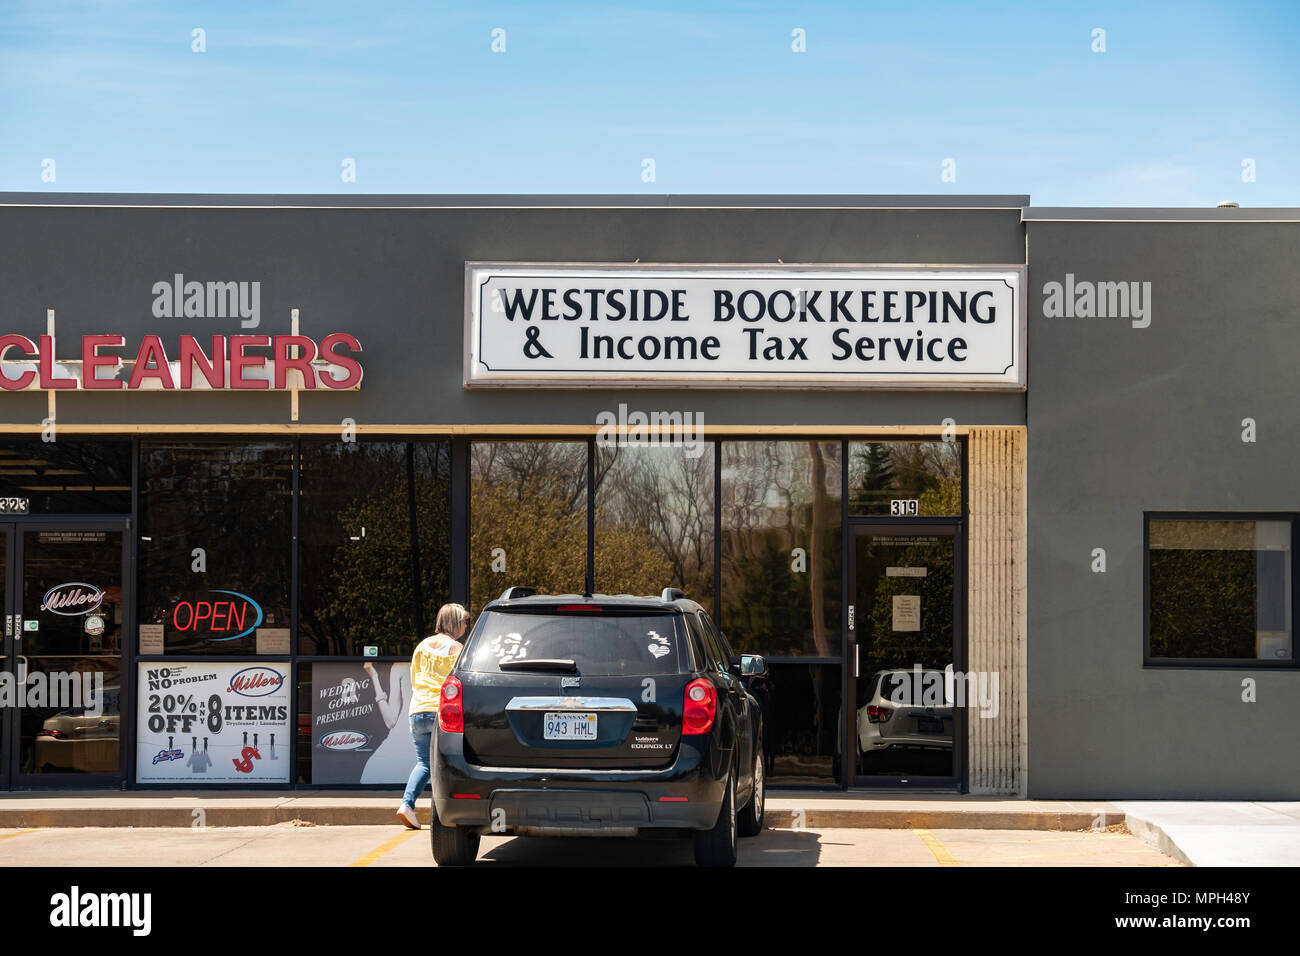 Westside Bookkeeping & Income Tax Service in a strip mall, west side, Wichita, Kansas, USA. - Stock Image